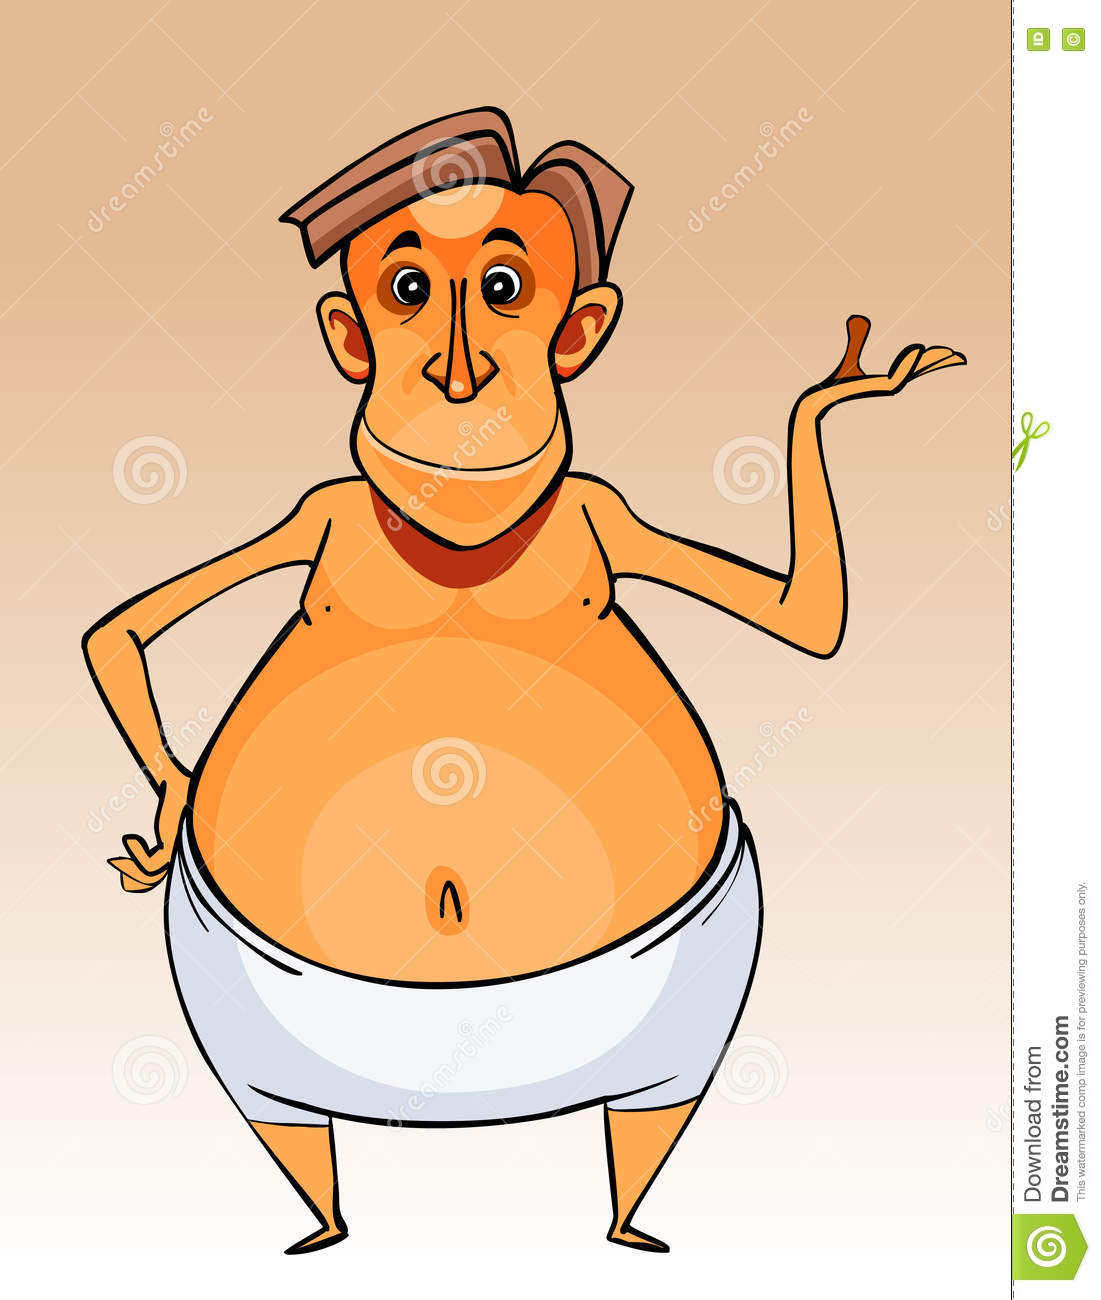 Nudes man Illustrations and Clip Art 1,594 Nudes man